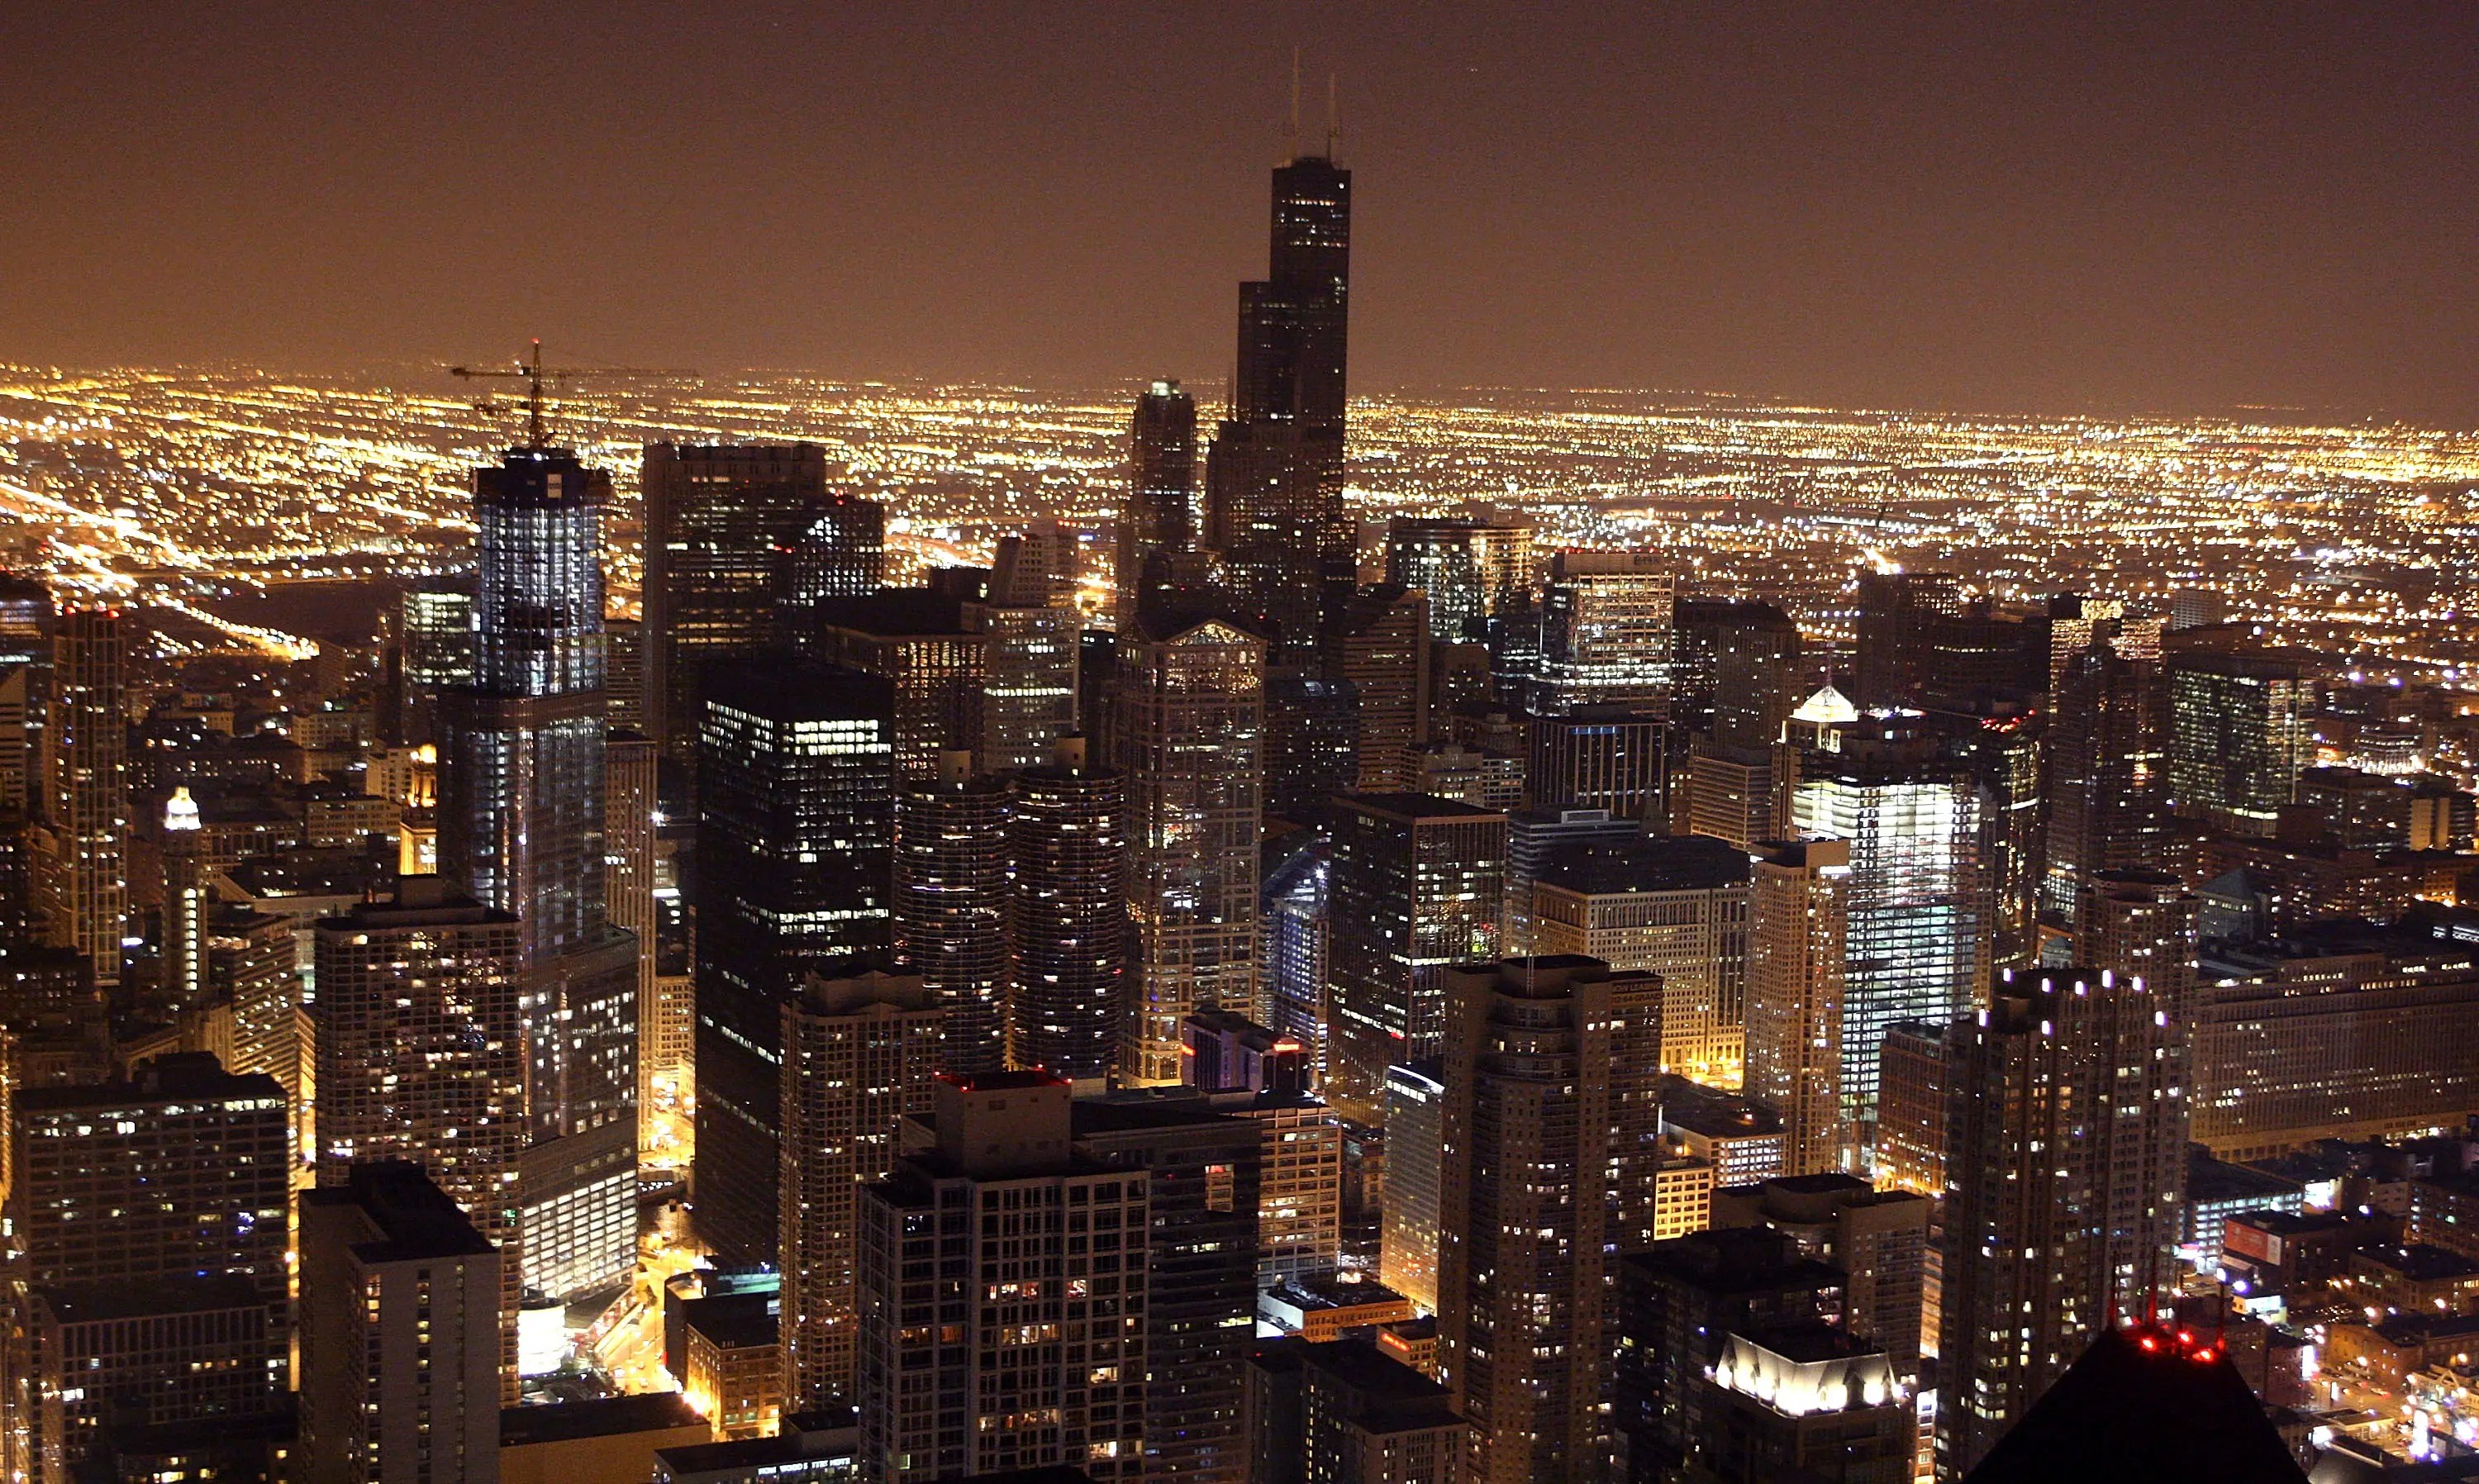 6. Chicago: 48.01 hours